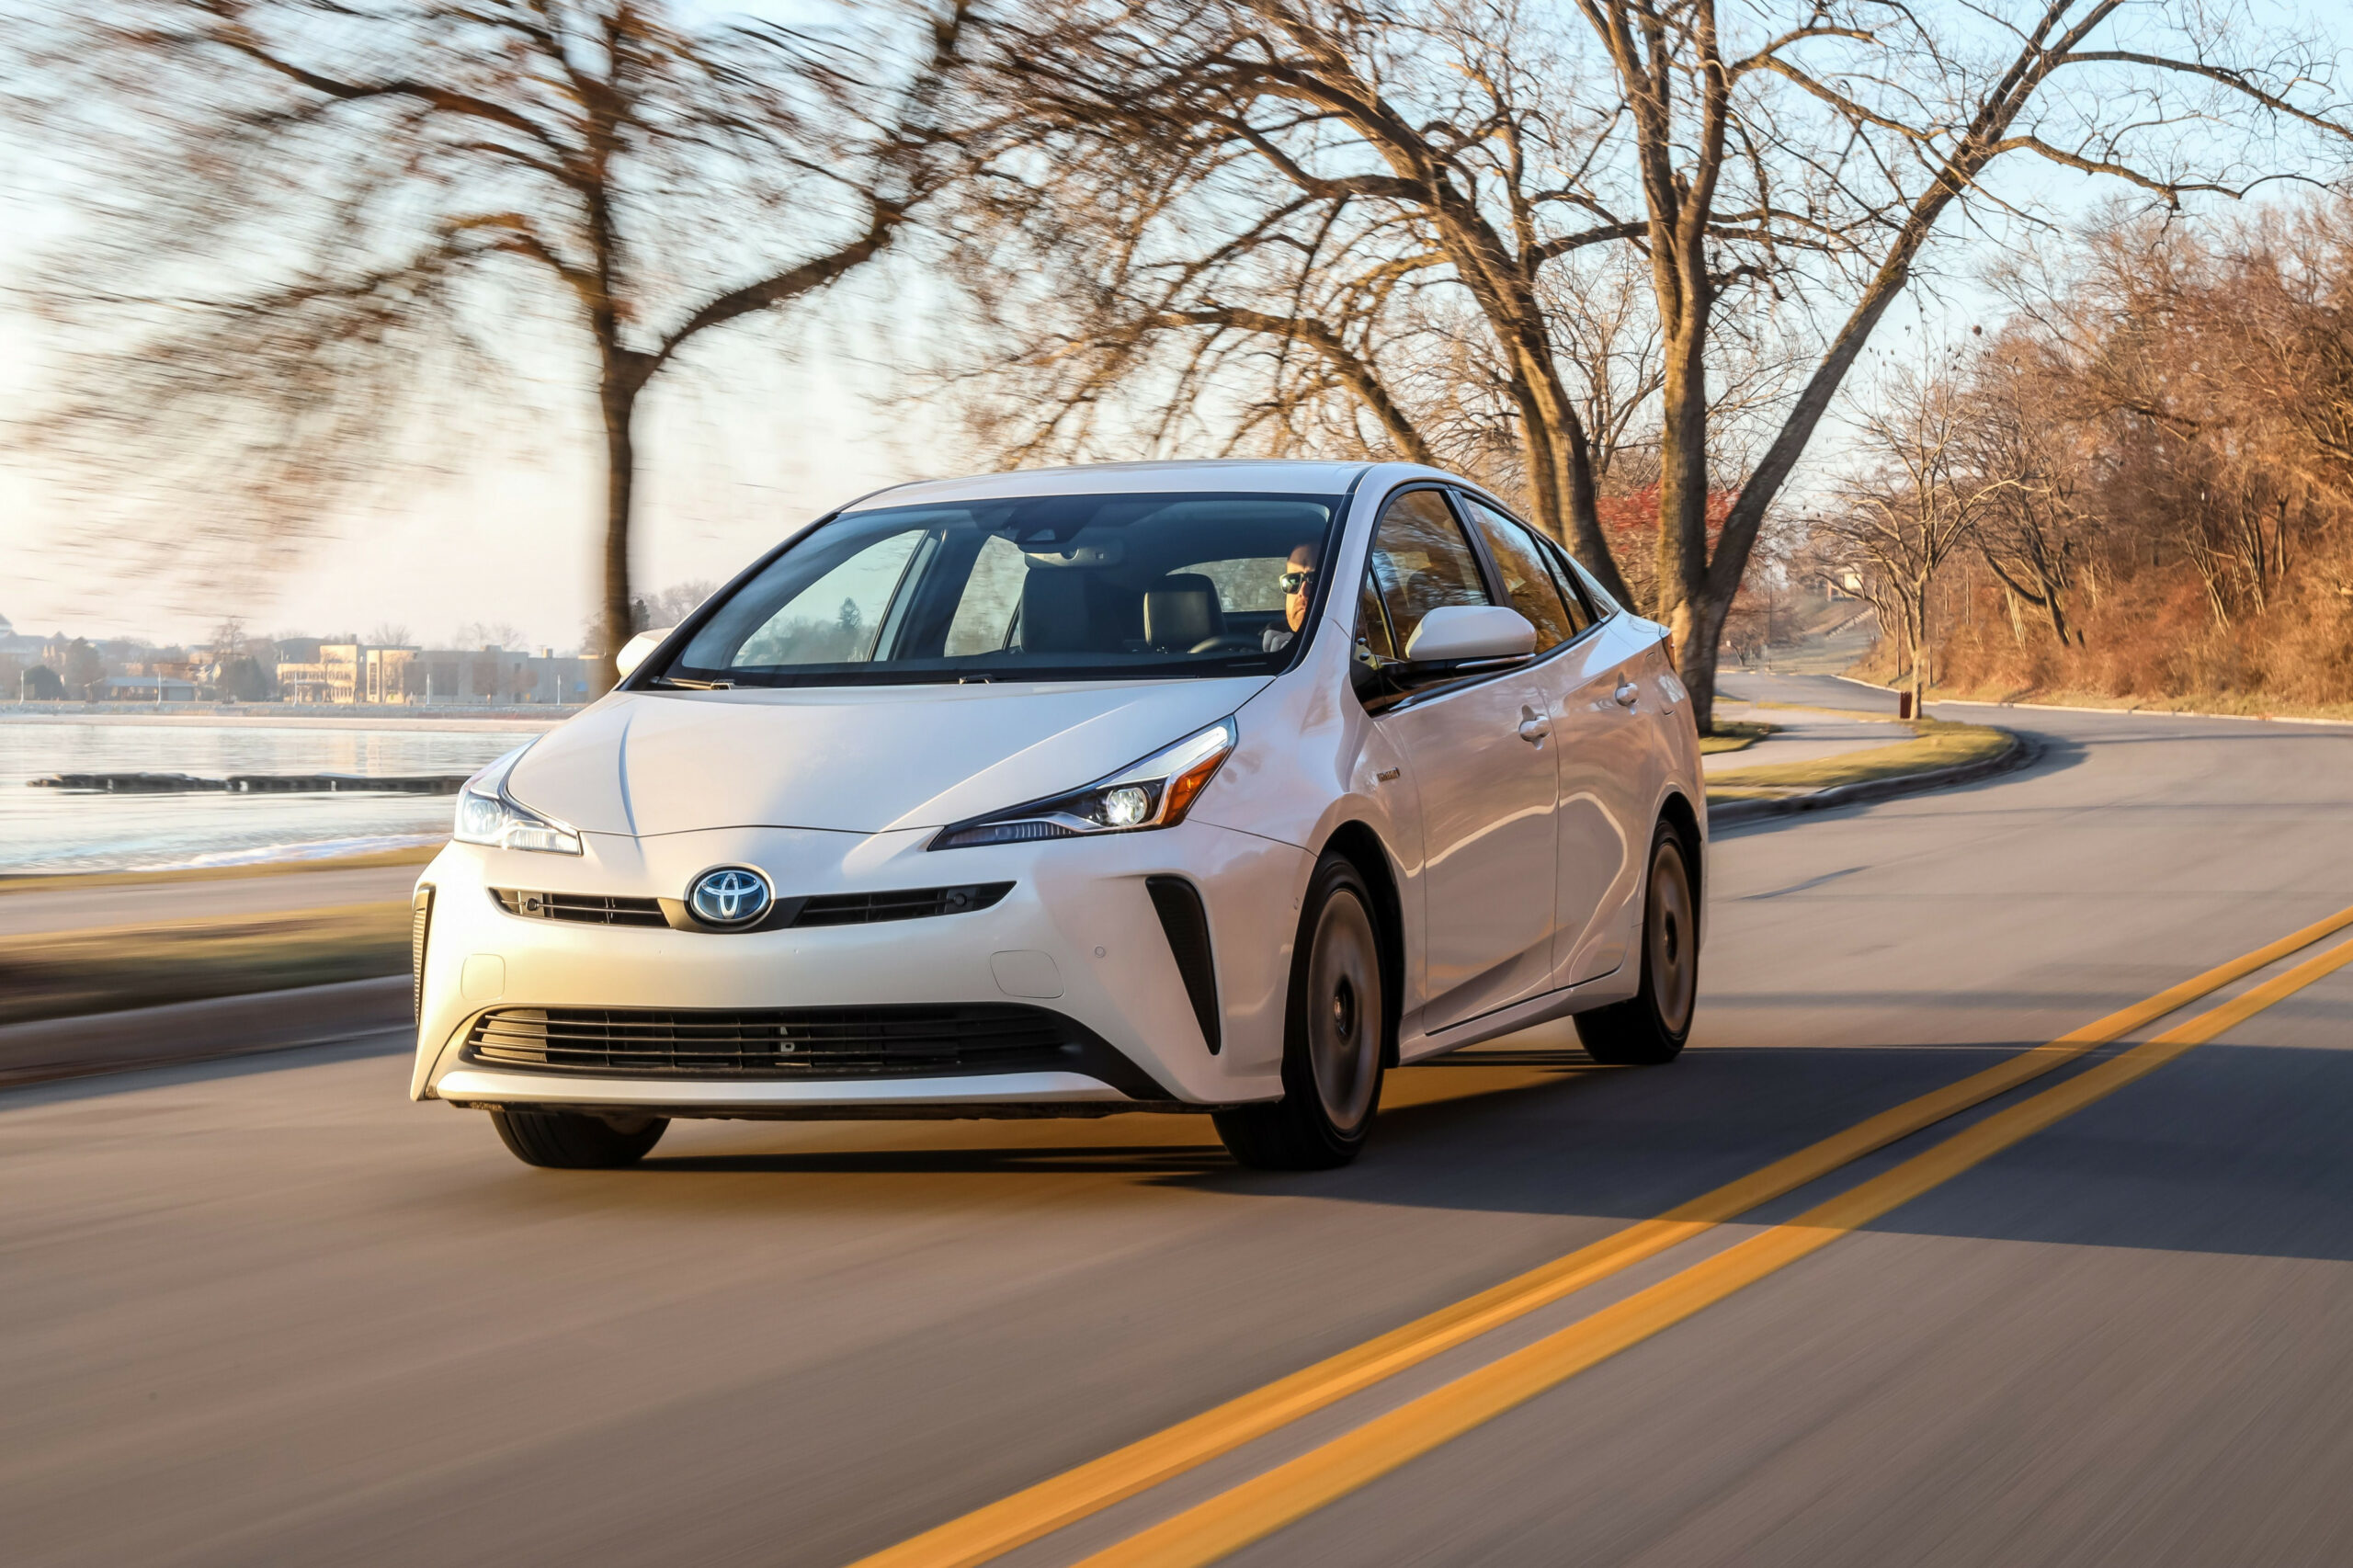 6 Toyota Prius Review, Pricing, and Specs